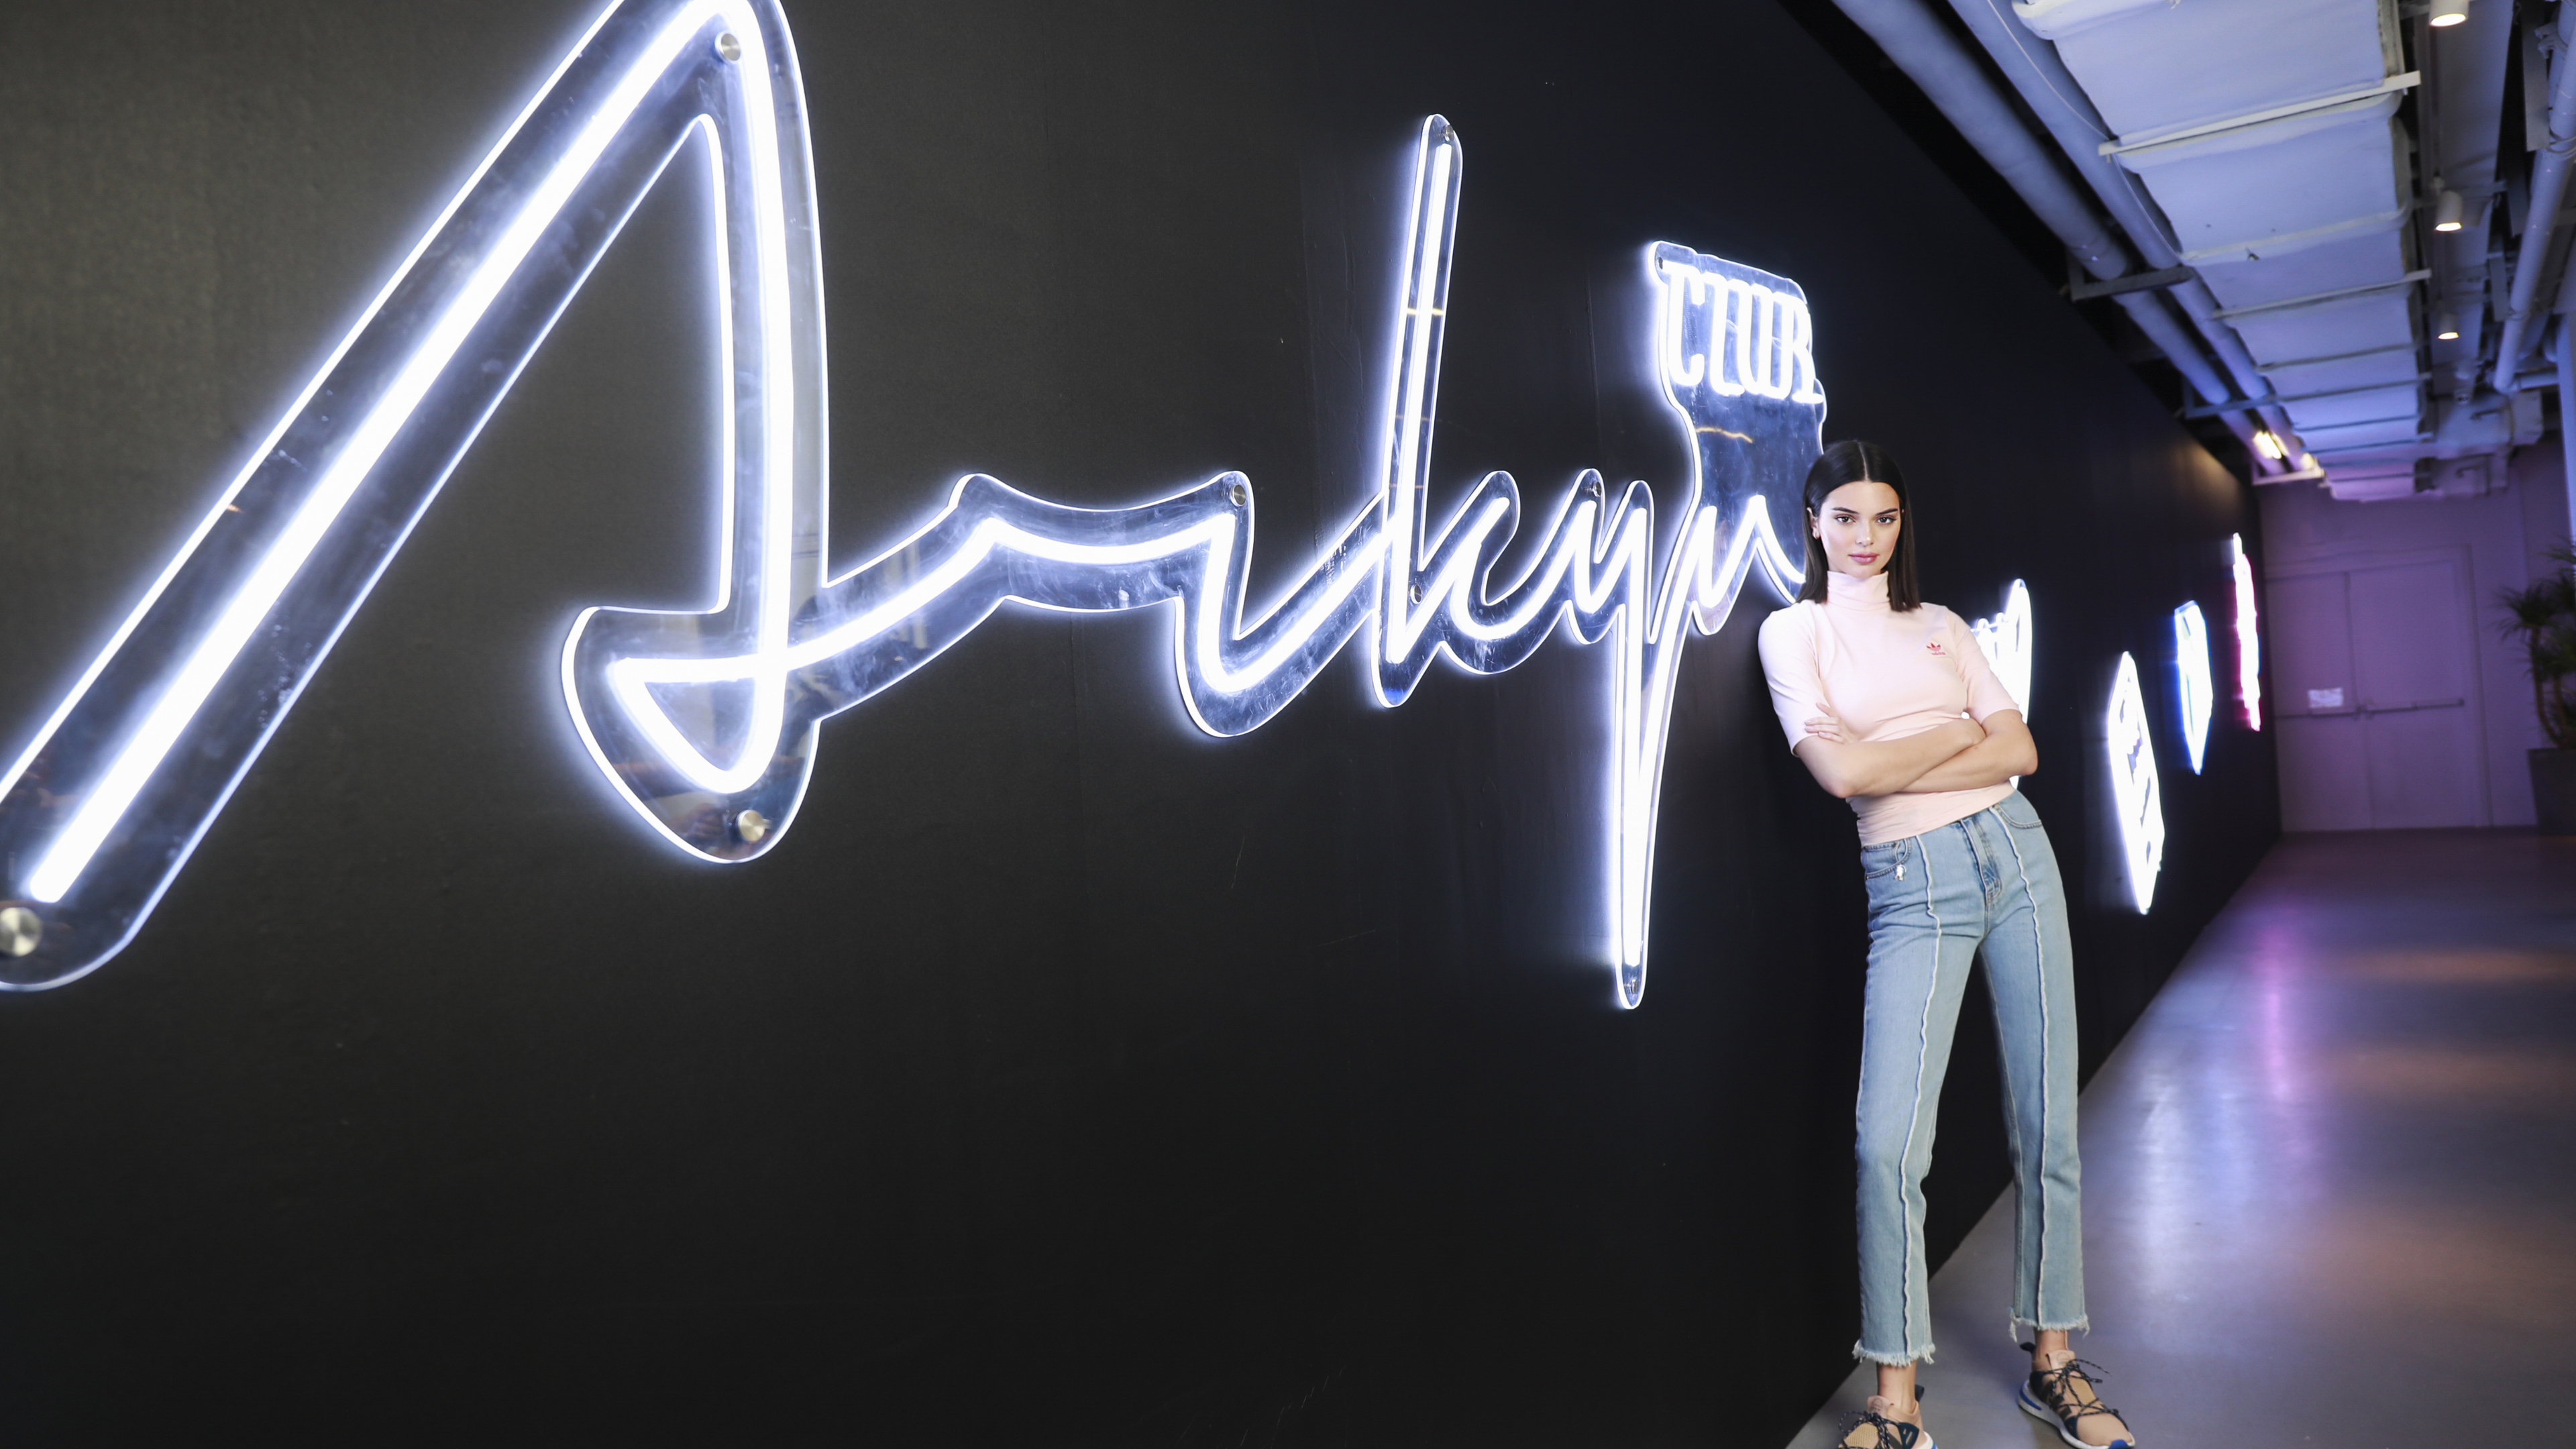 kendall jenner adidas campaign 5k 1536944696 - Kendall Jenner Adidas Campaign 5k - model wallpapers, kendall jenner wallpapers, hd-wallpapers, girls wallpapers, celebrities wallpapers, adidas wallpapers, 5k wallpapers, 4k-wallpapers